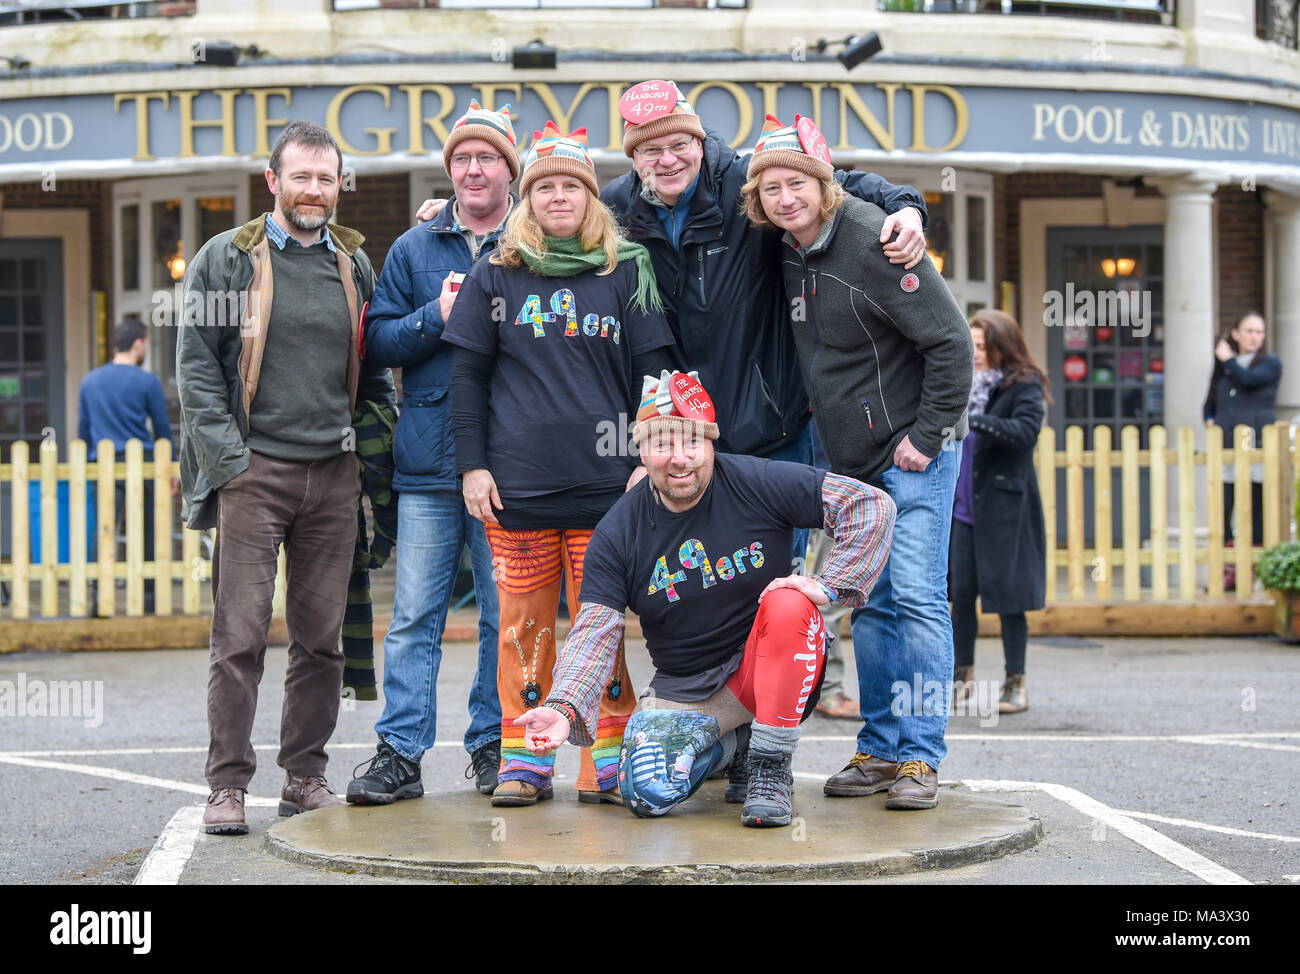 Crawley UK 30th March 2018  - Members of the Handrcoss 49rs team at the World Marbles Championships held at the Greyhound pub in Tinsley Green near Crawley . This event takes place annually every Good Friday and has been played in its current format since 1932 Photograph taken by Simon Dack Credit: Simon Dack/Alamy Live News - Stock Image